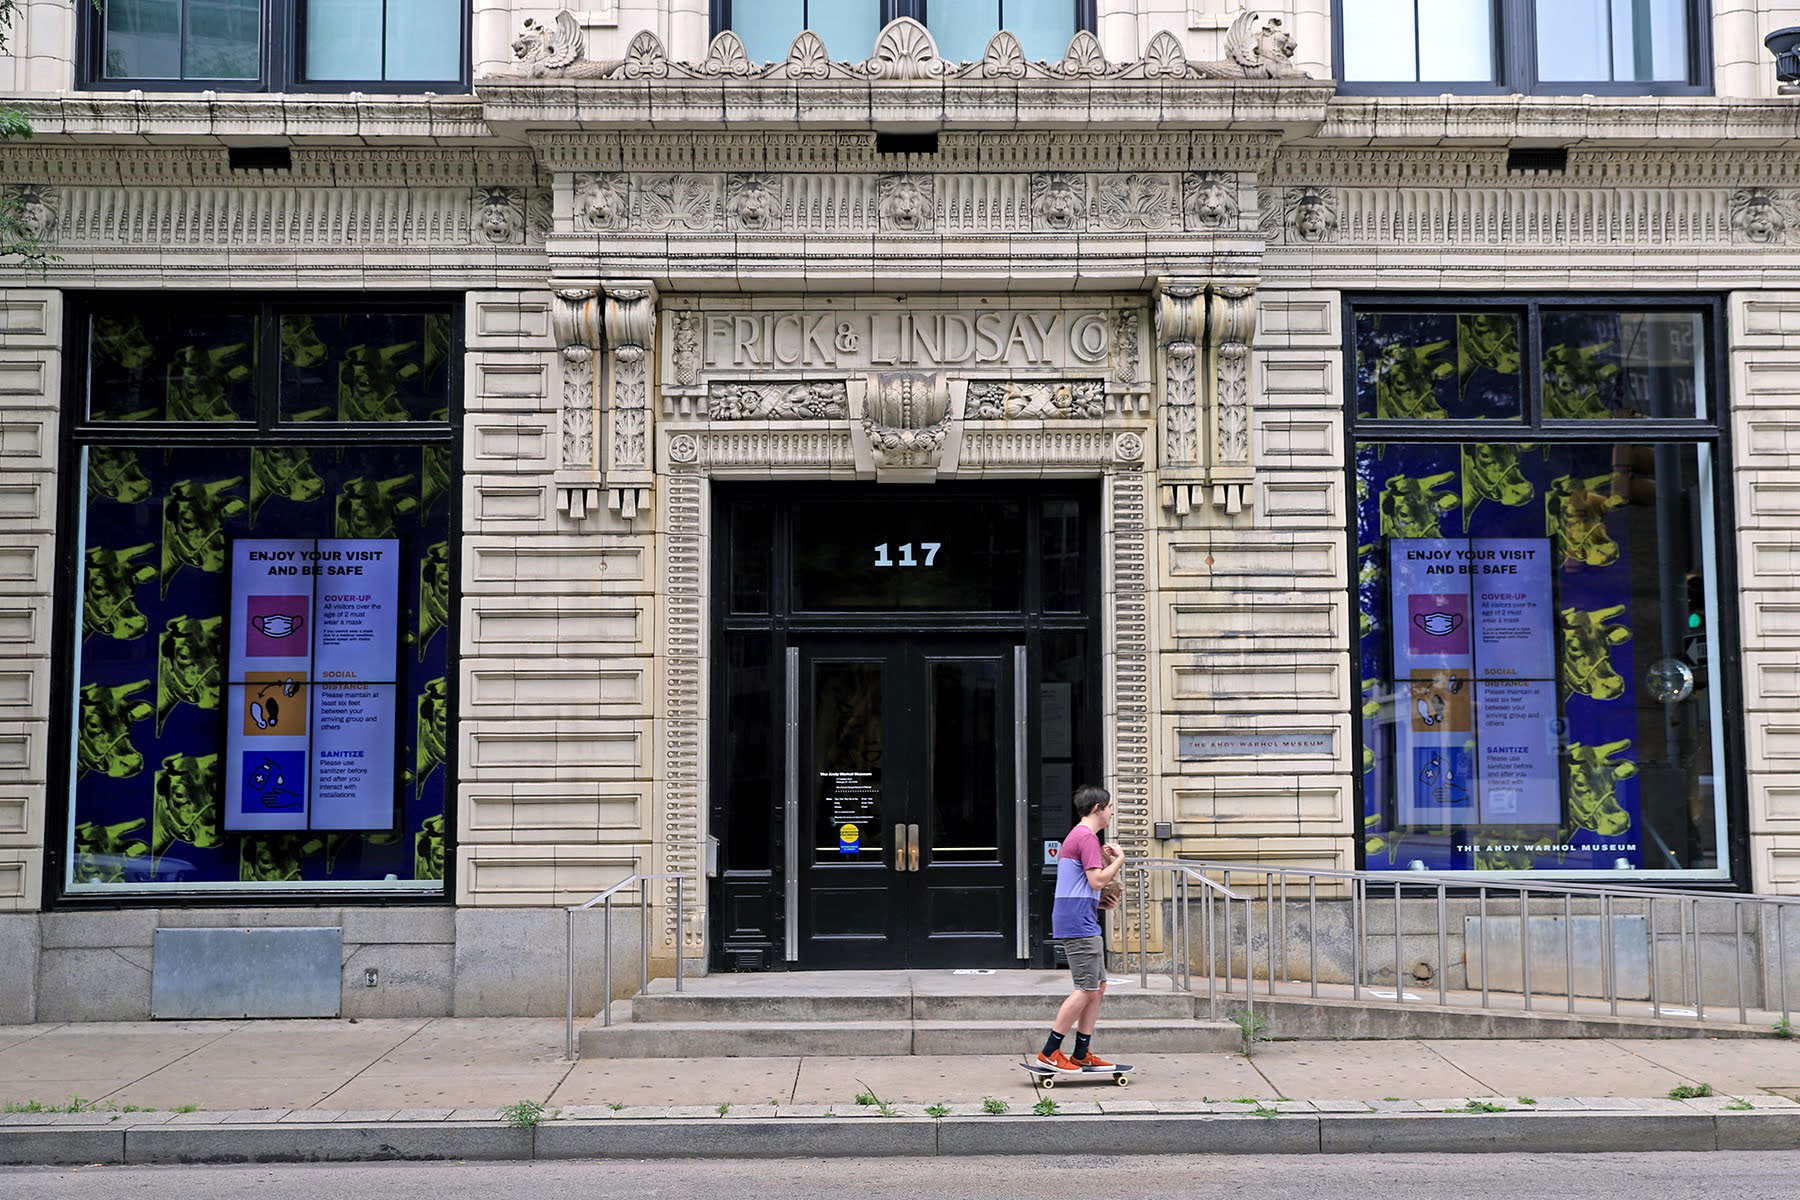 Head-on photograph of the outside of the Andy Warhol Museum. In the windows are large blue and yellow prints of Andy Warhol's cow prints. The entrance has both stairs and a ramp. In the foreground, someone skateboards down the sidewalk.